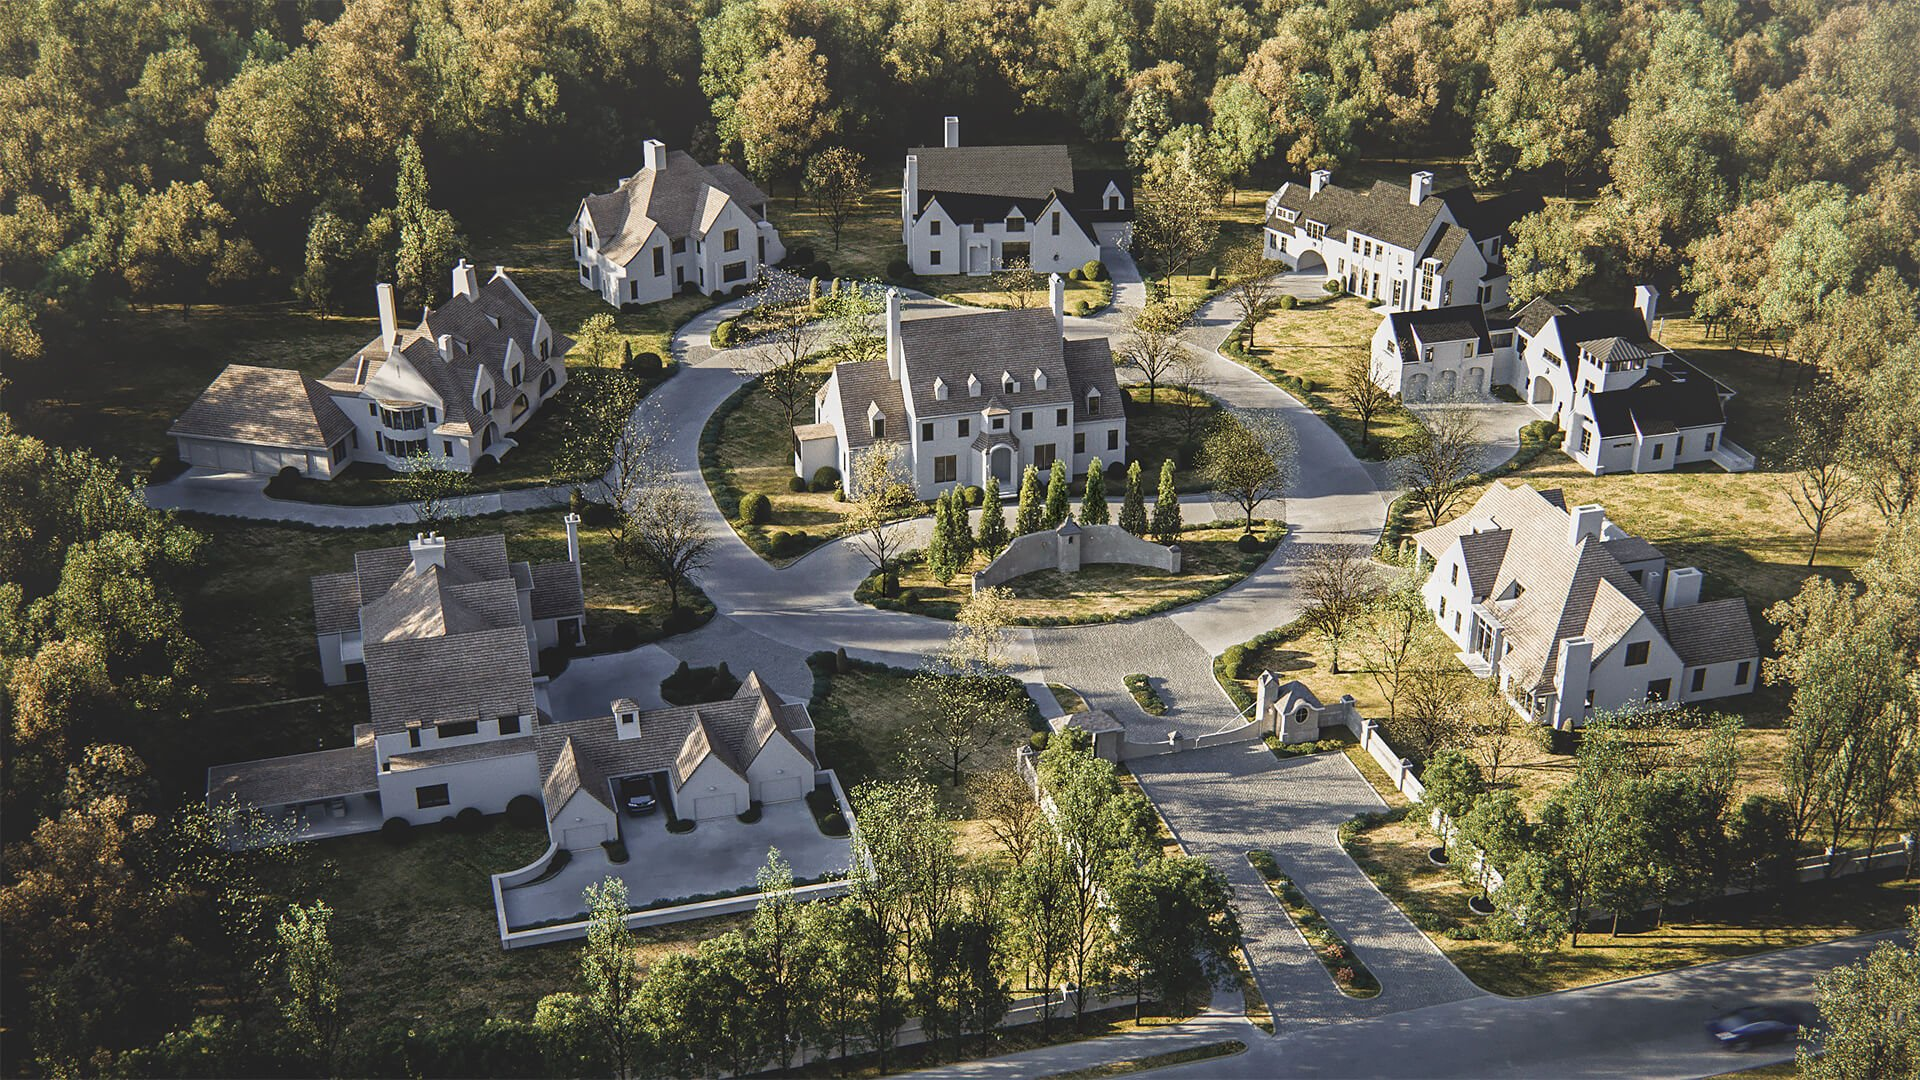 Exterior CG Render Featuring Beautiful Rural Area with Country Houses